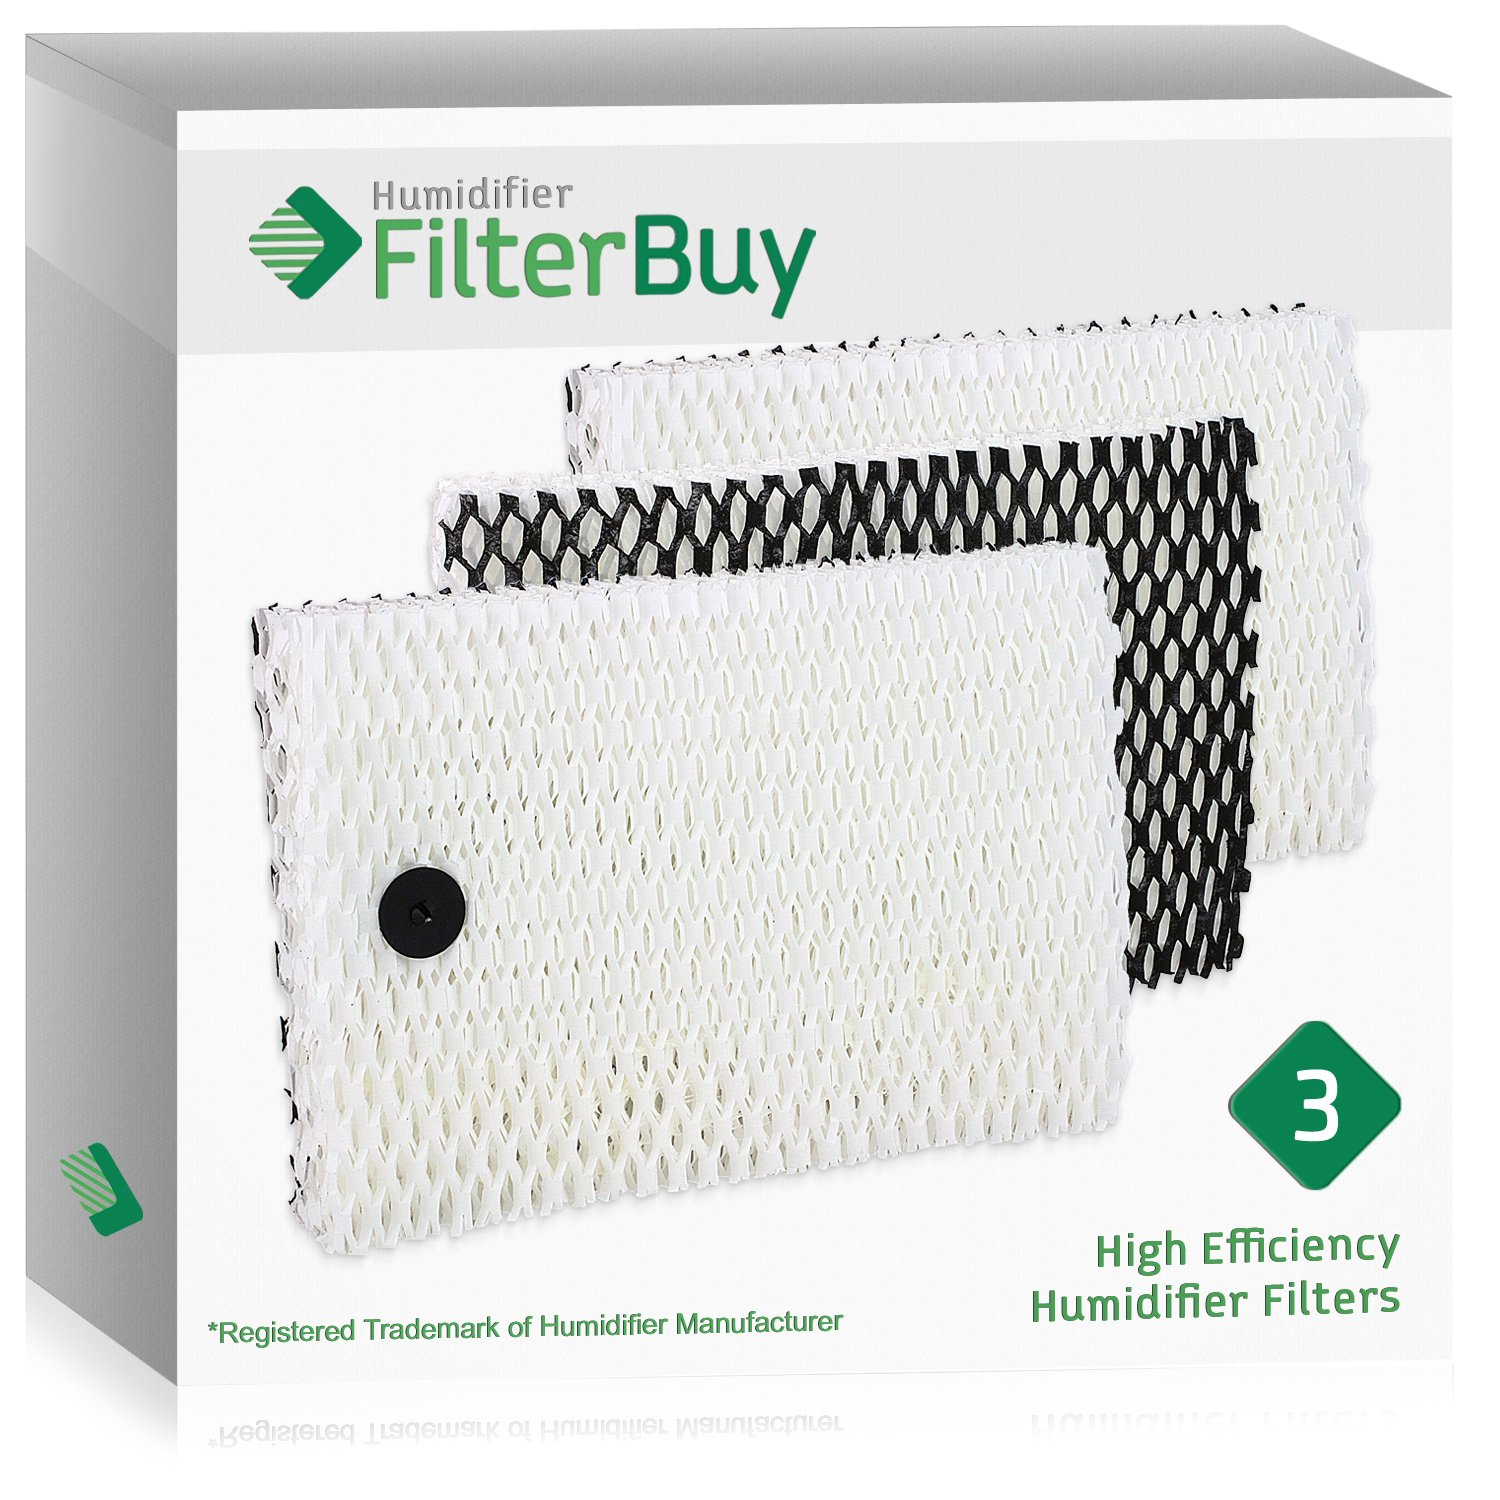 HM2220 /& HM2200 Fits Sunbeam SCM1745 /& SCM1746 HM1745 HM1750 HM1730 HM1746 Holmes HWF64 Humidifier Filter B Fits HM1761 HM1645 Designed /& Engineered by Crucial Air